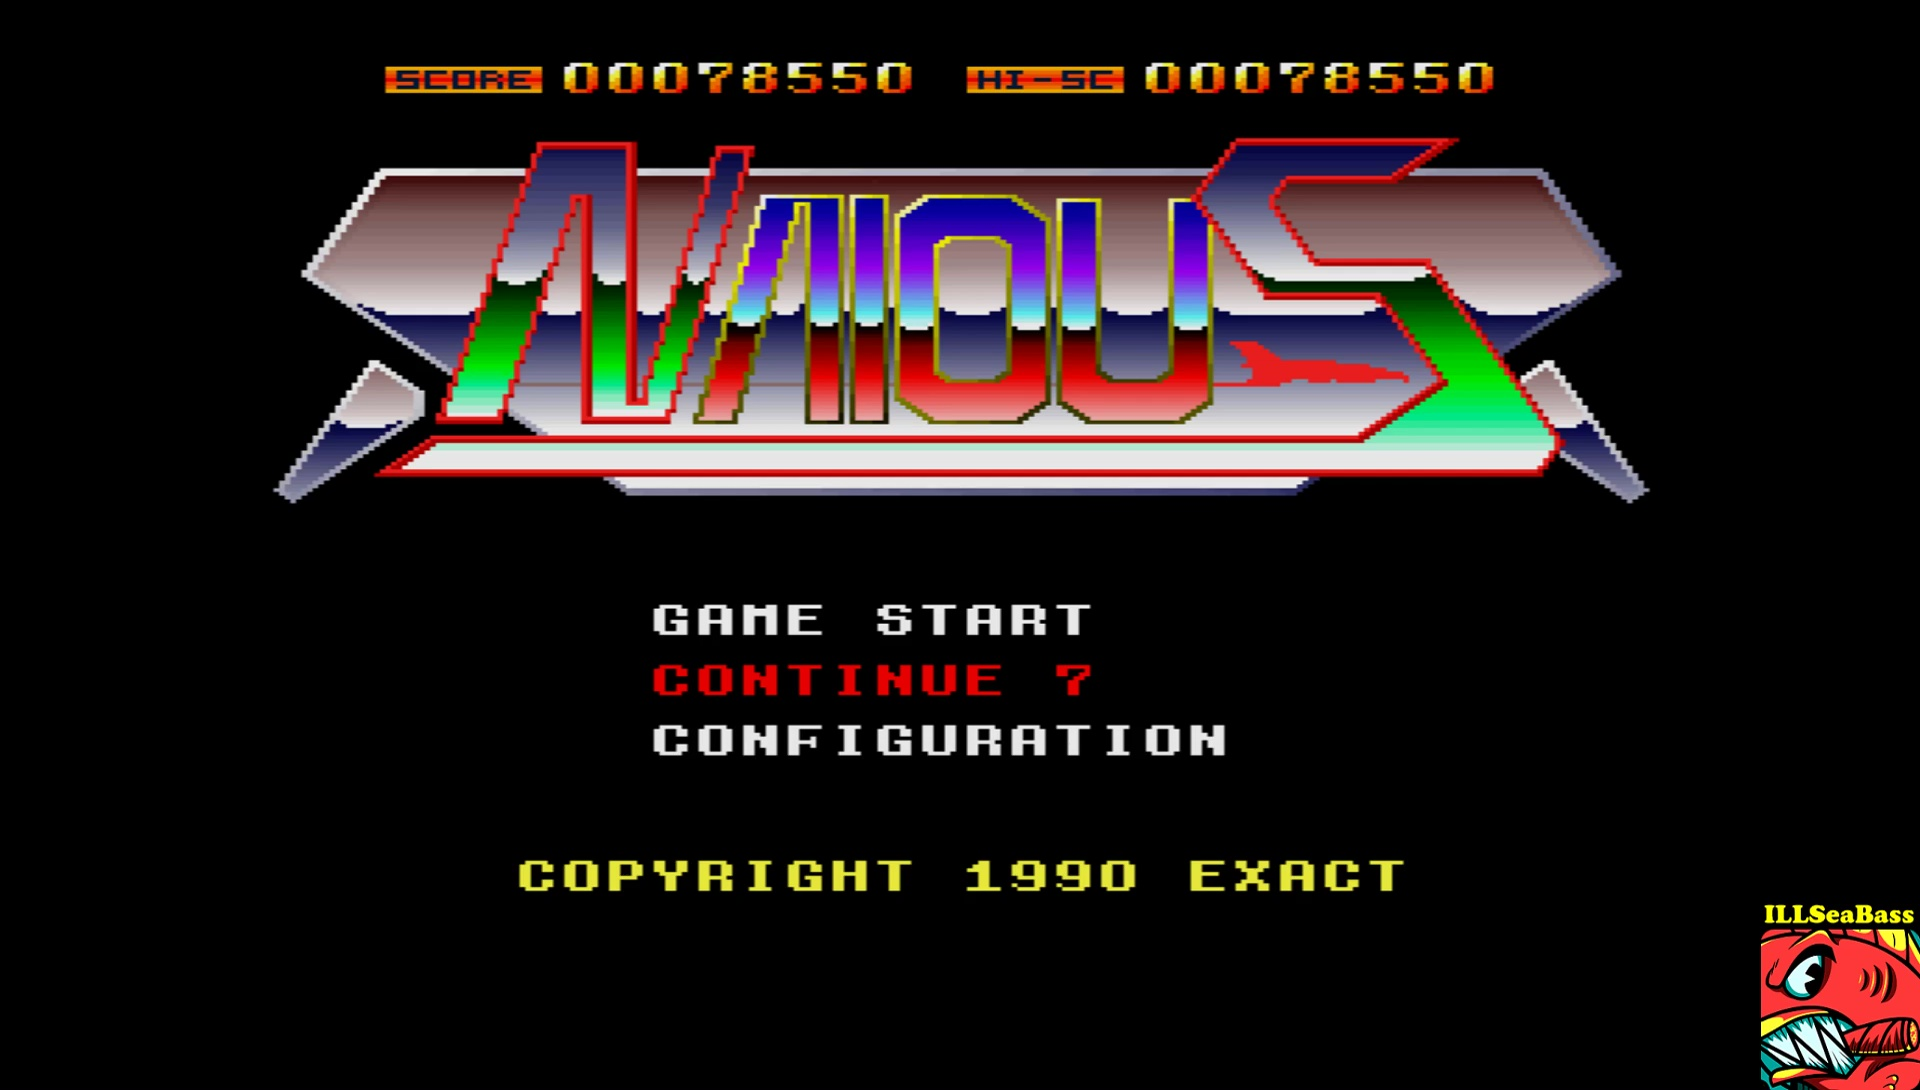 ILLSeaBass: Naious [Easy] (Sharp X68000 Emulated) 78,550 points on 2017-06-25 12:05:36